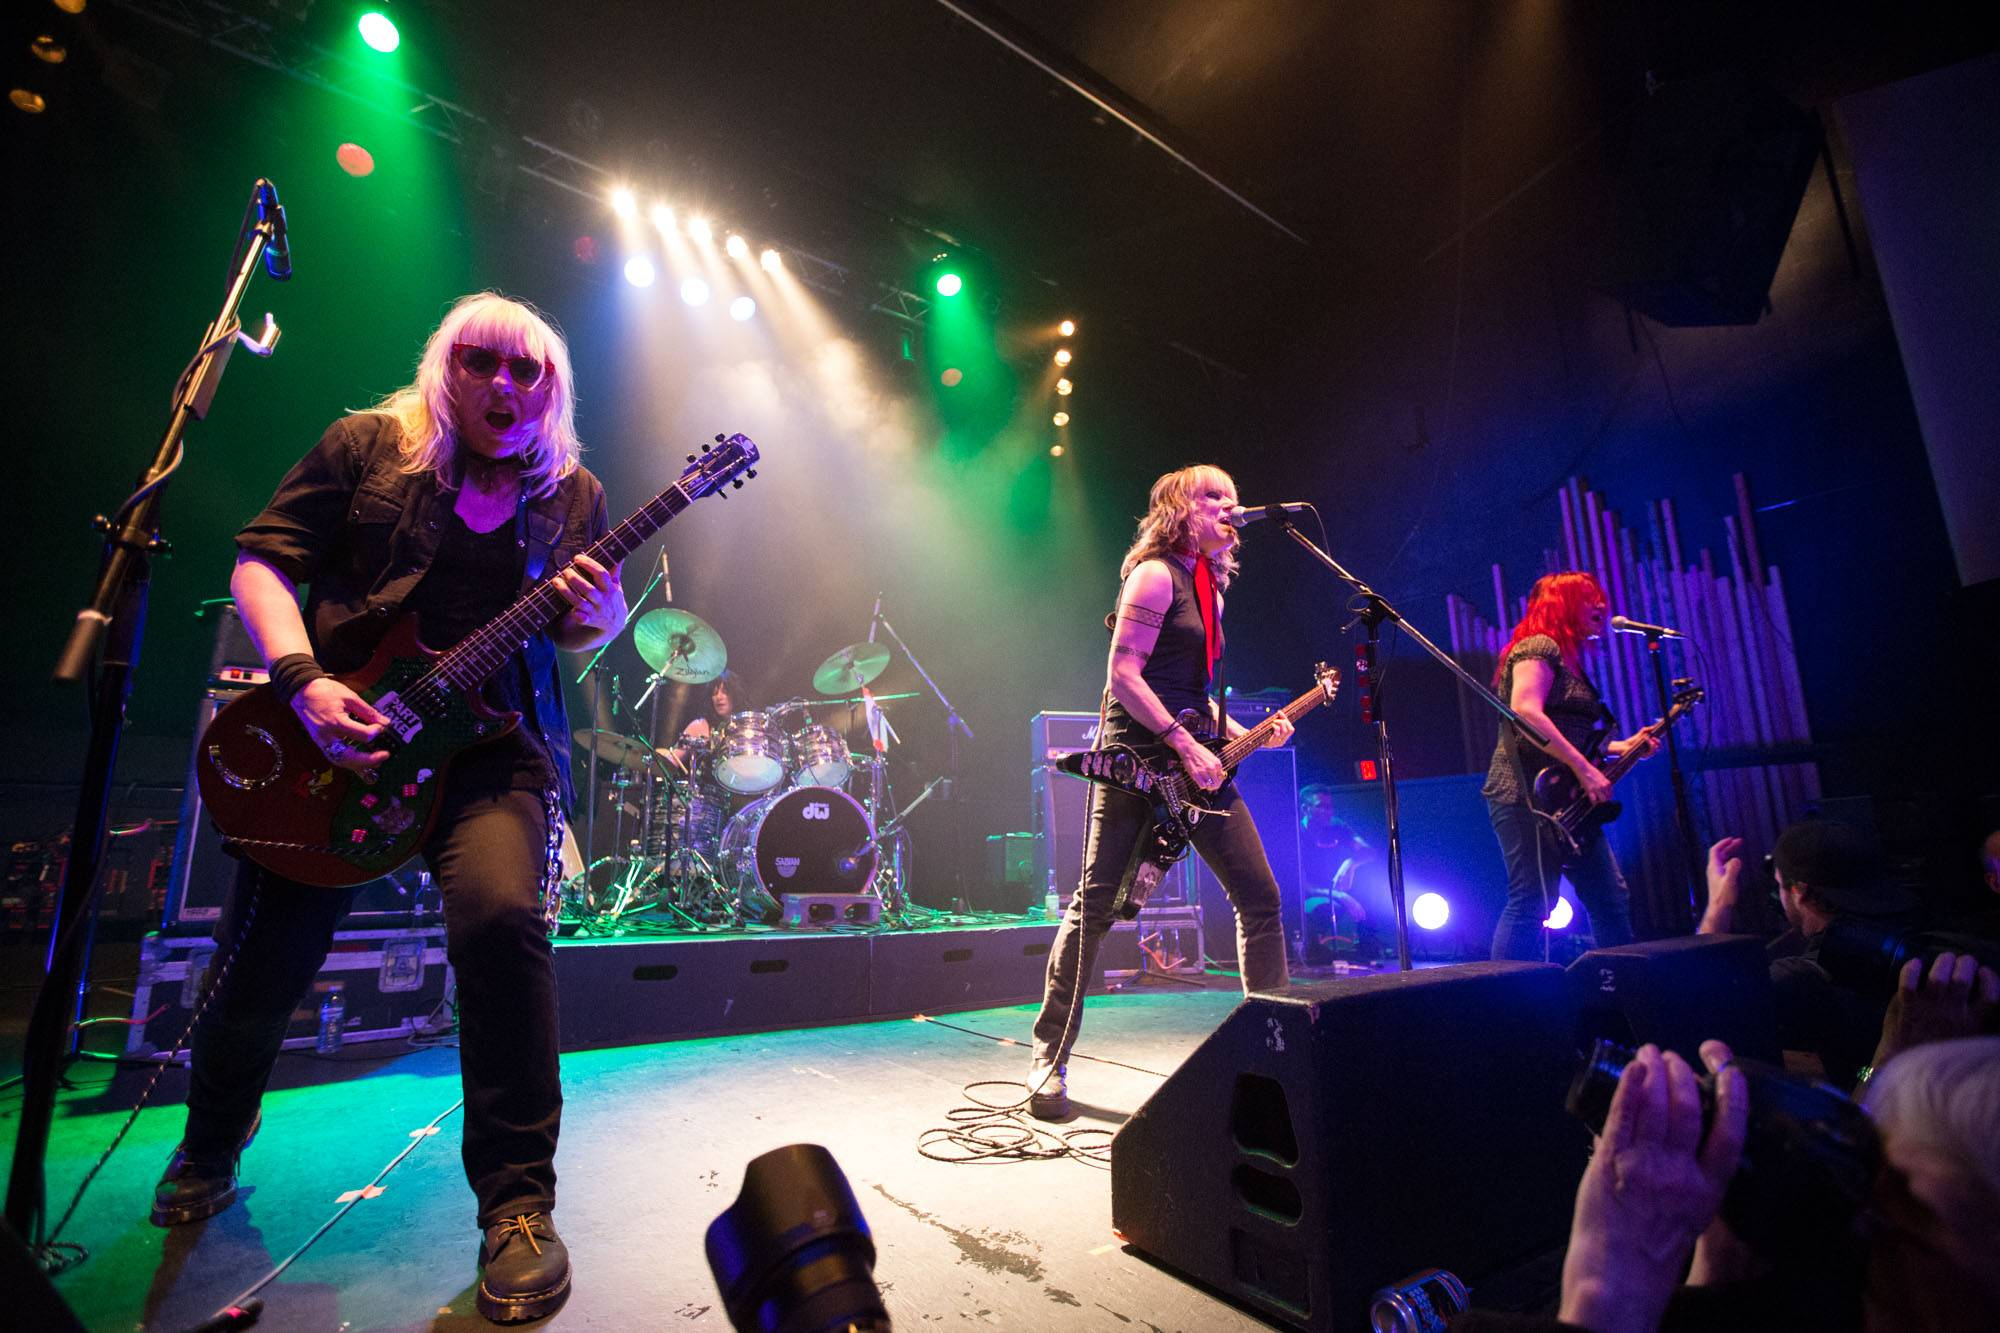 L7 at the Rickshaw Theatre, Vancouver, Nov 4 2015. Kirk Chantraine photo.